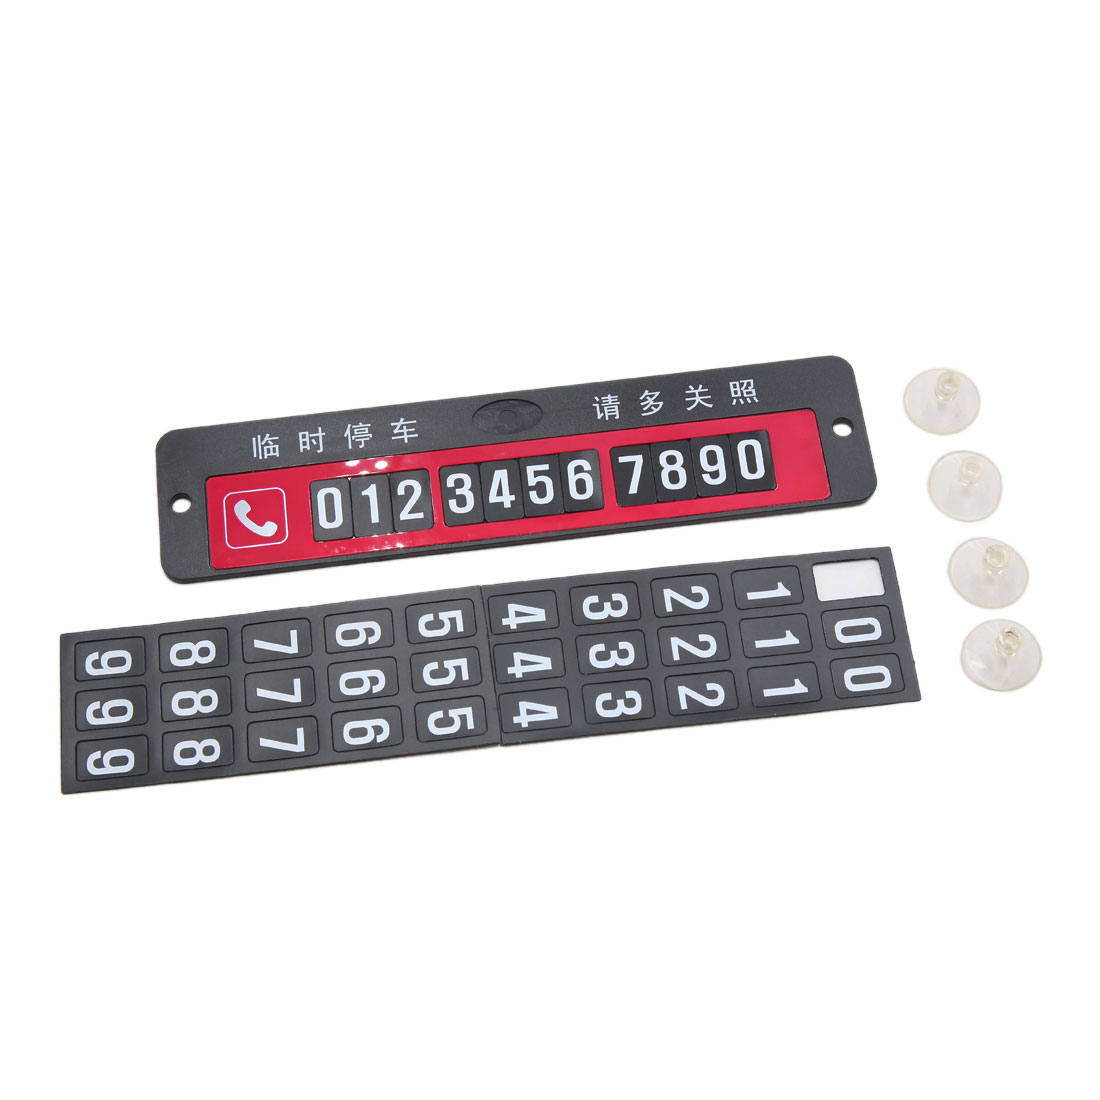 Red Car Auto Temporary Parking Notification Phone Number Card 20 x 4.8 x 0.3cm